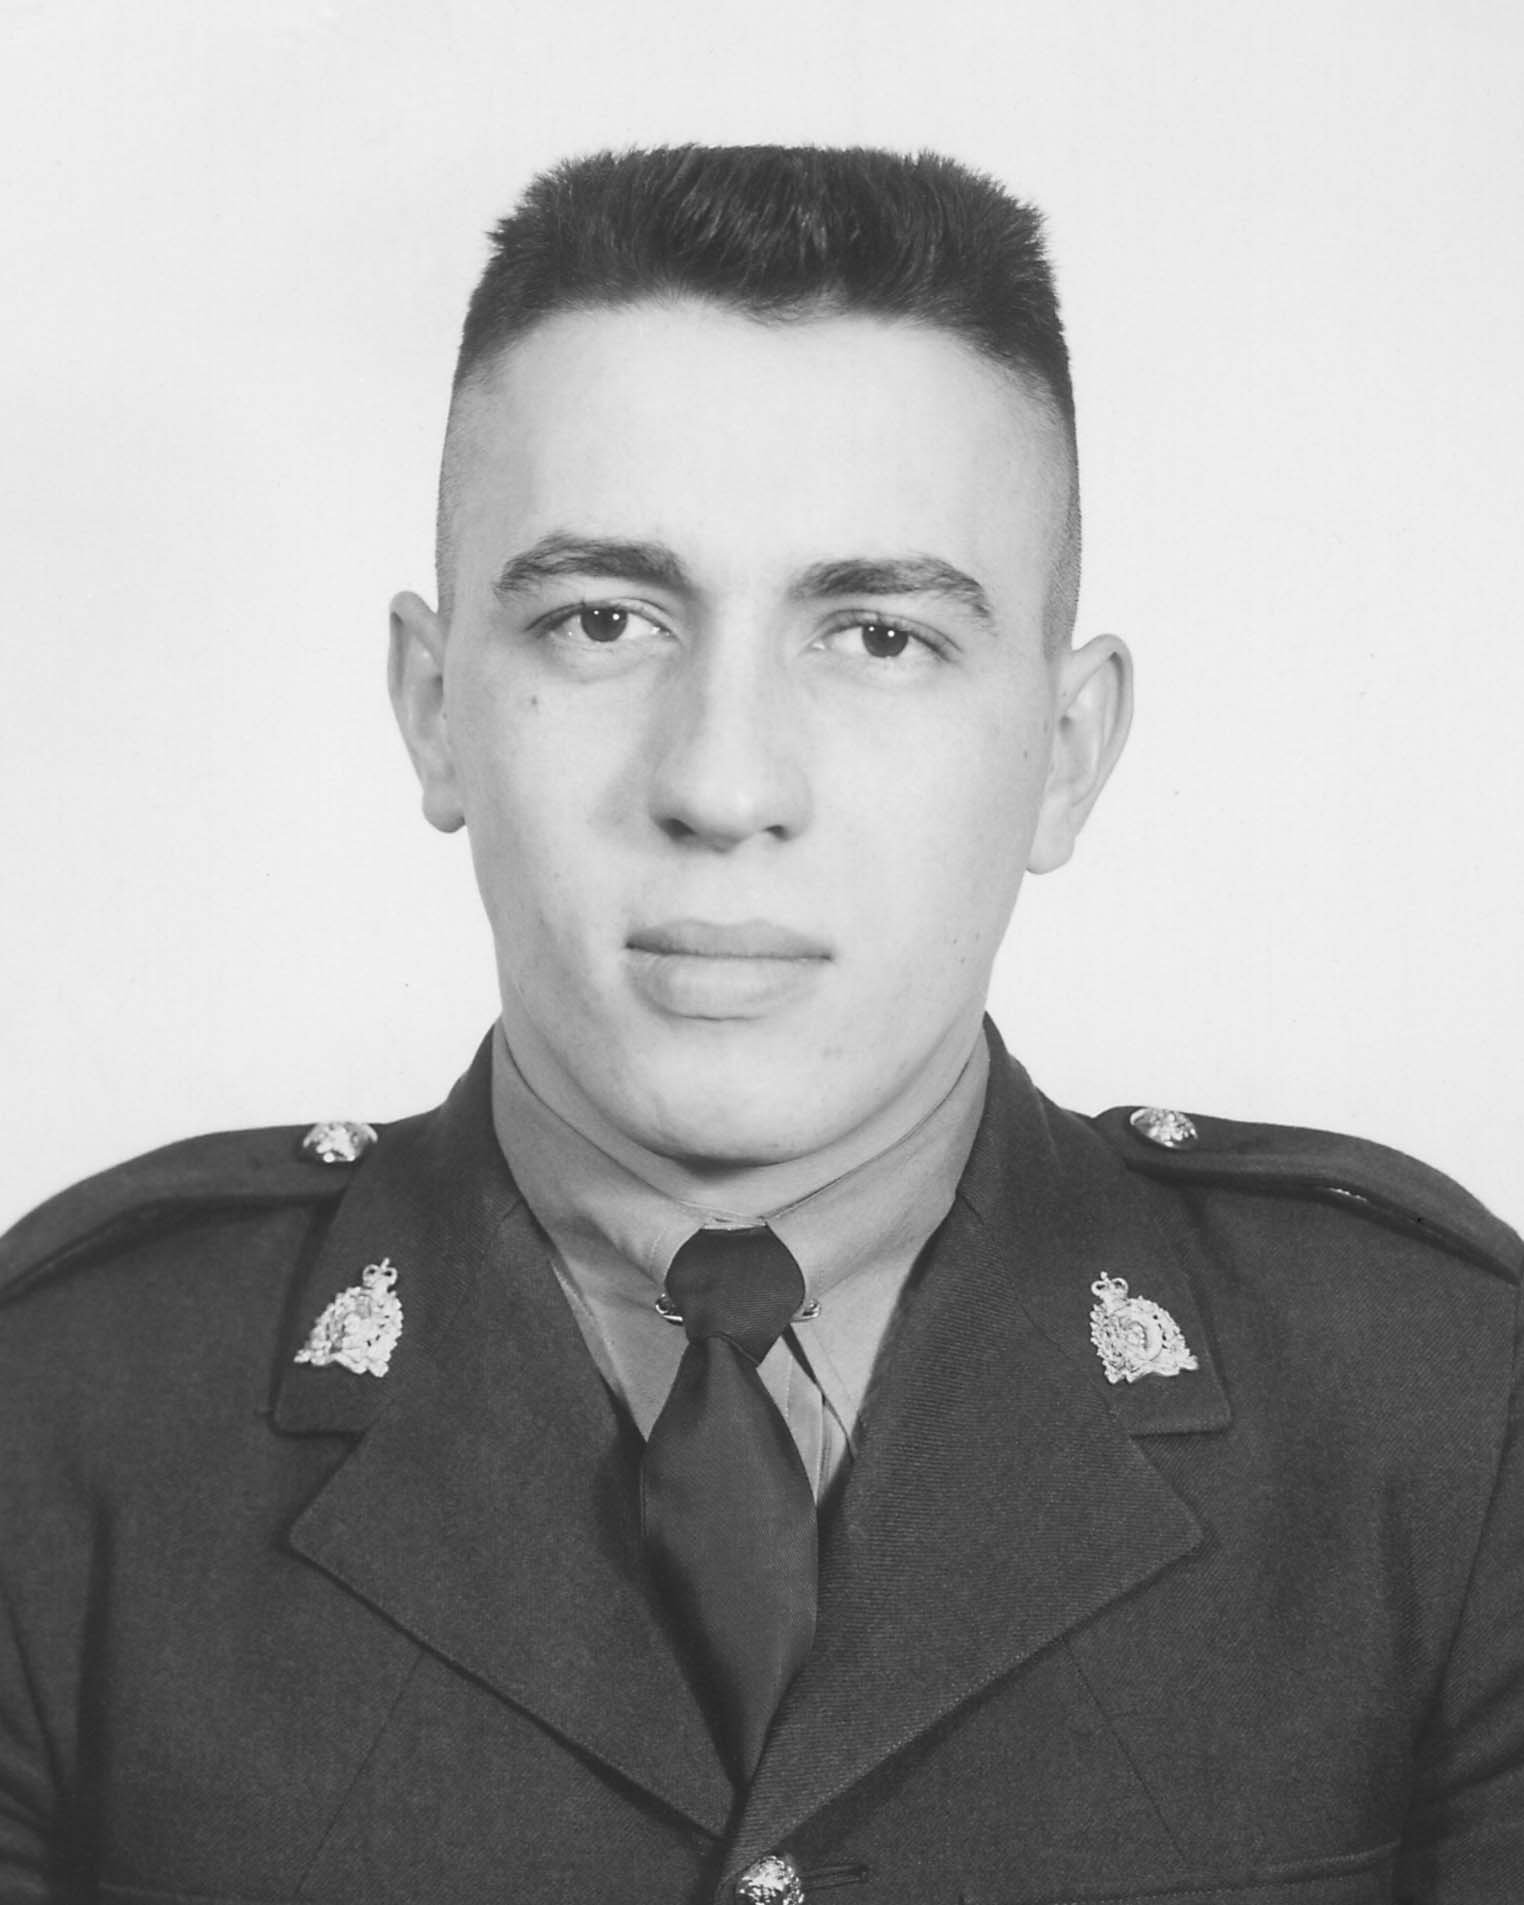 Second Class Constable Maurice Melvin Melnychuk– © Her Majesty the Queen in Right of Canada as represented by the Royal Canadian Mounted Police